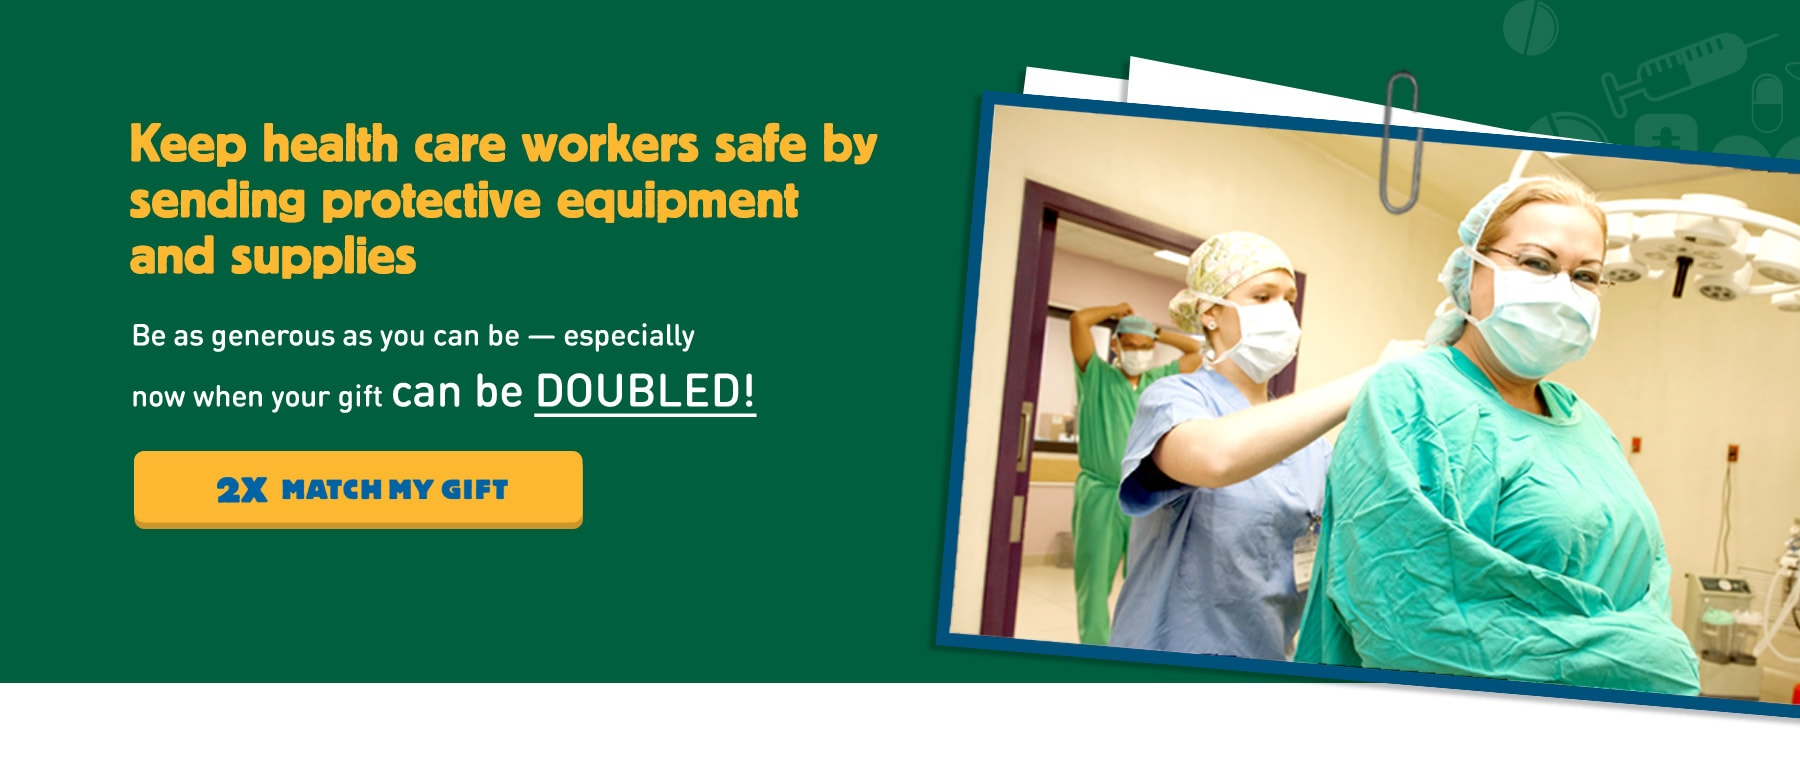 Keep health care workers safe